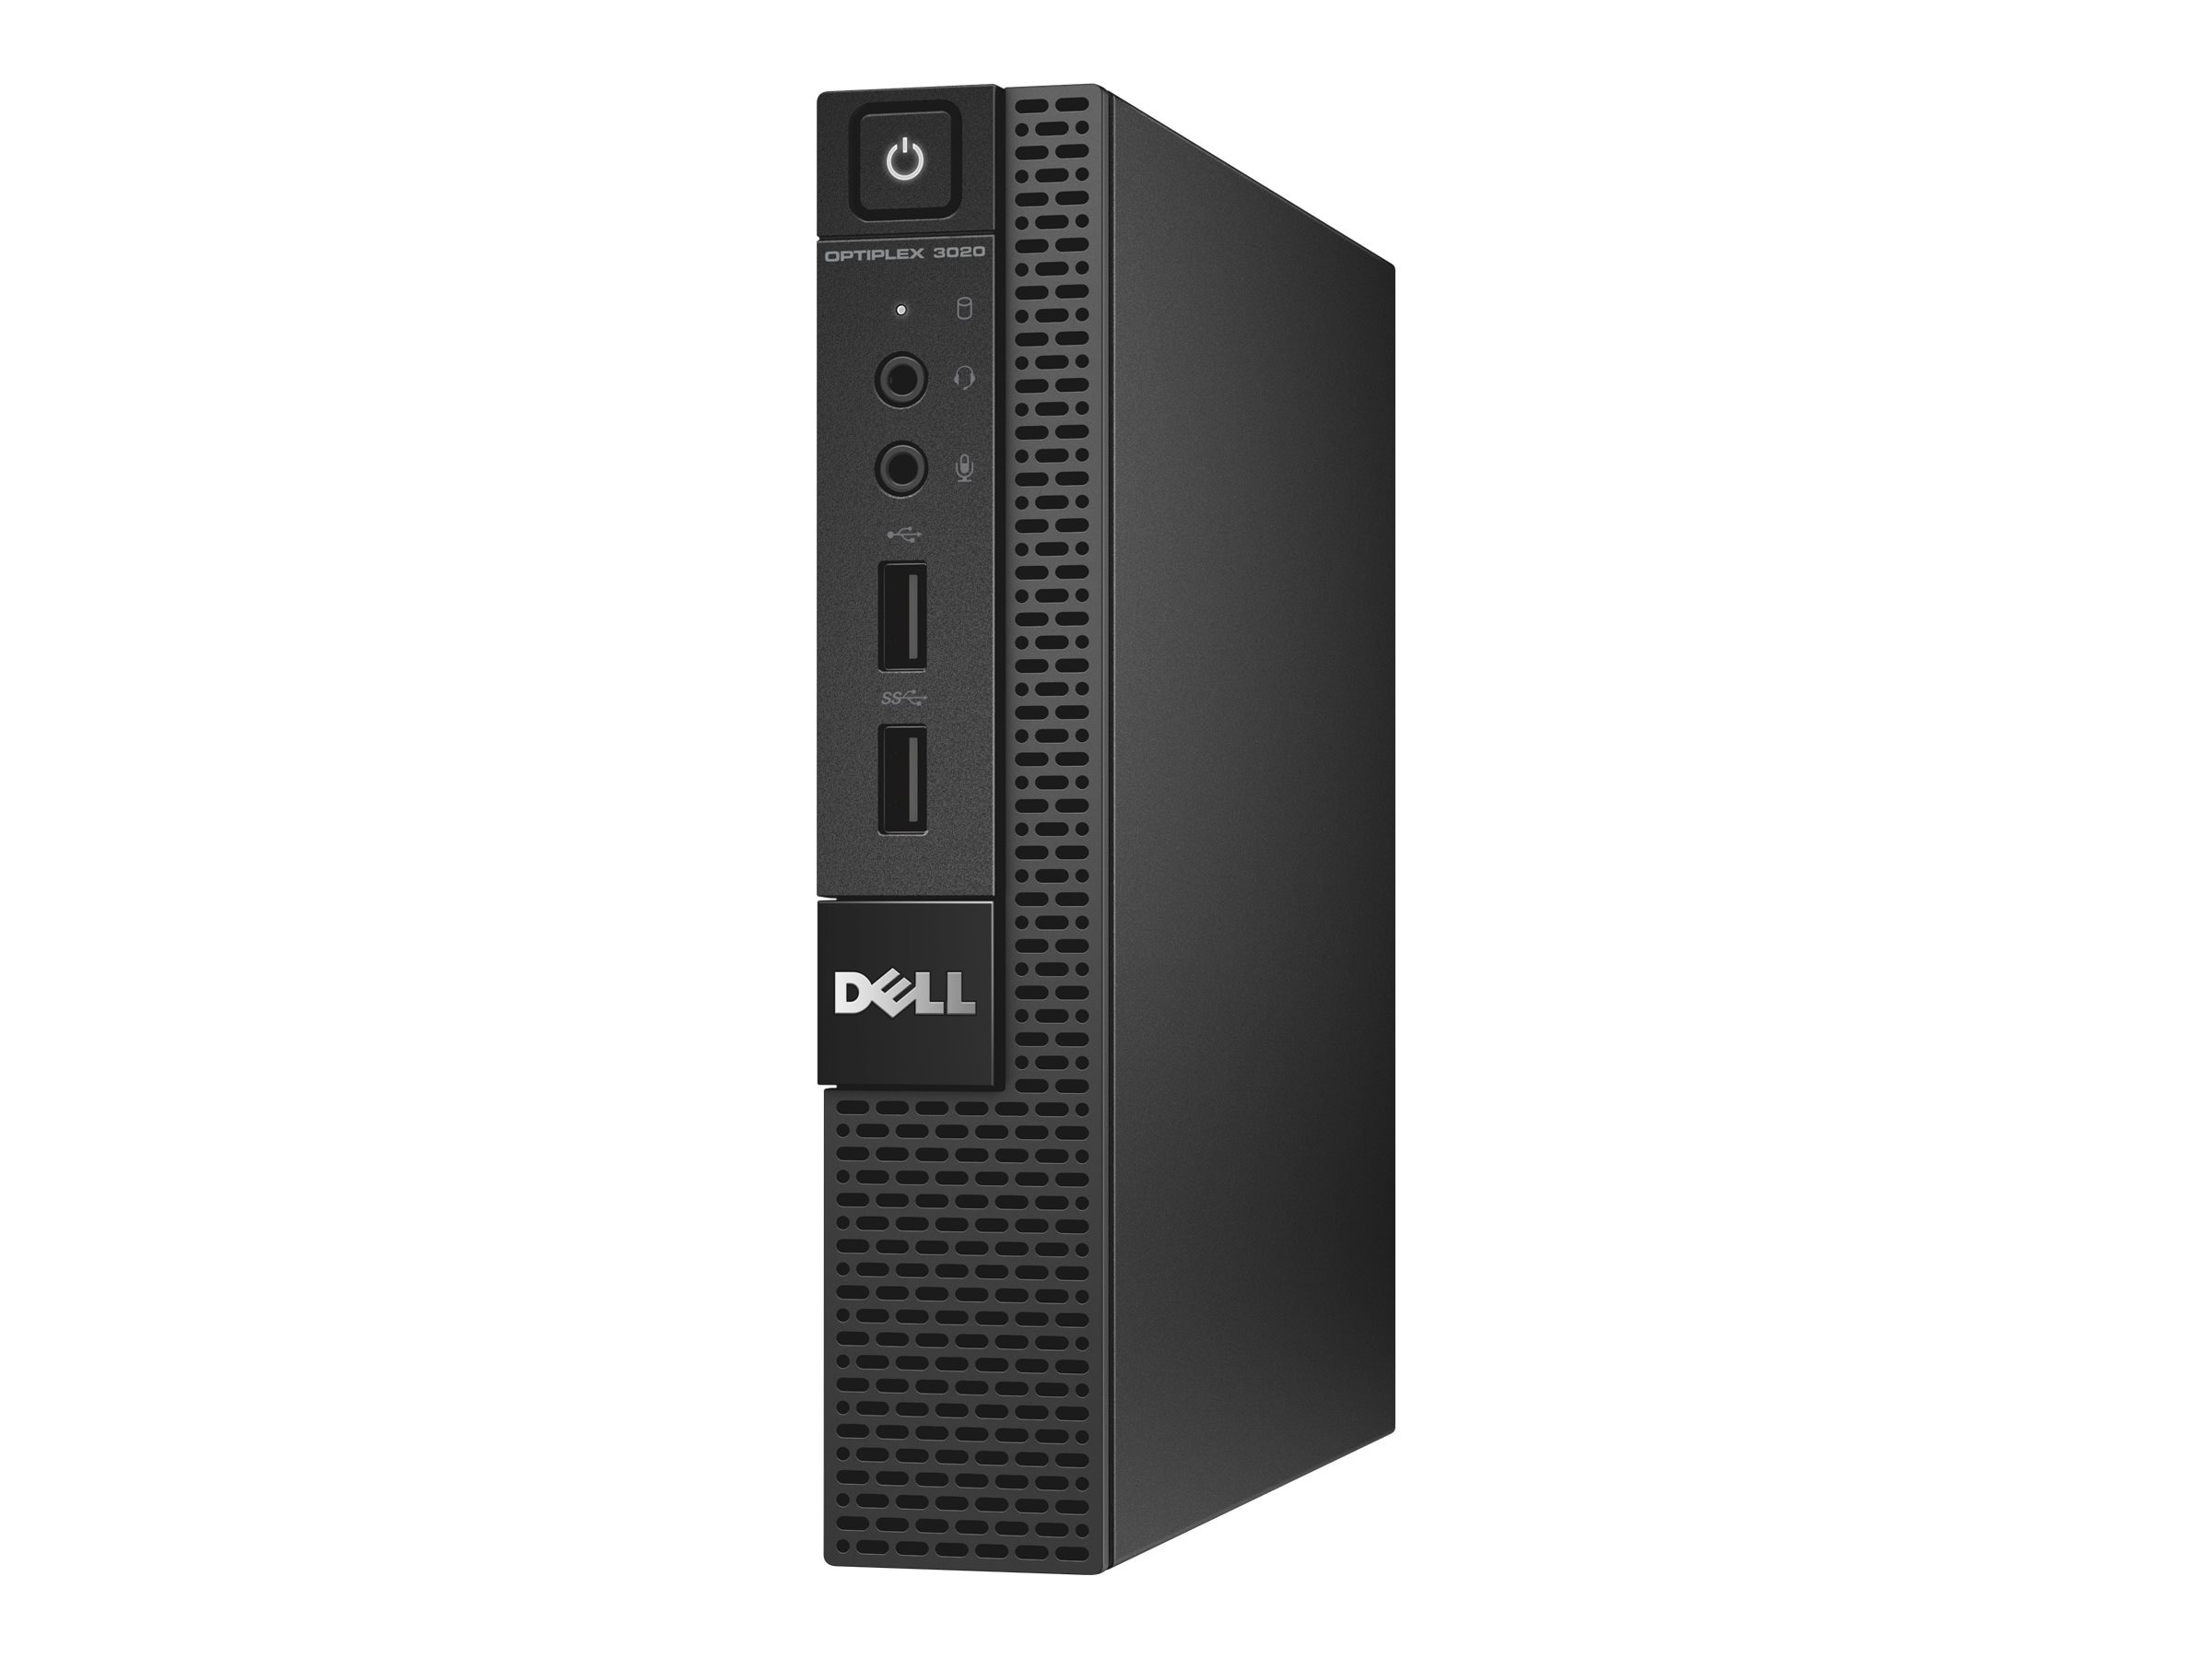 Dell Optiplex 3020 2.0GHz Core i5 8GB RAM 500GB hard drive, 4MM29, 18985143, Desktops